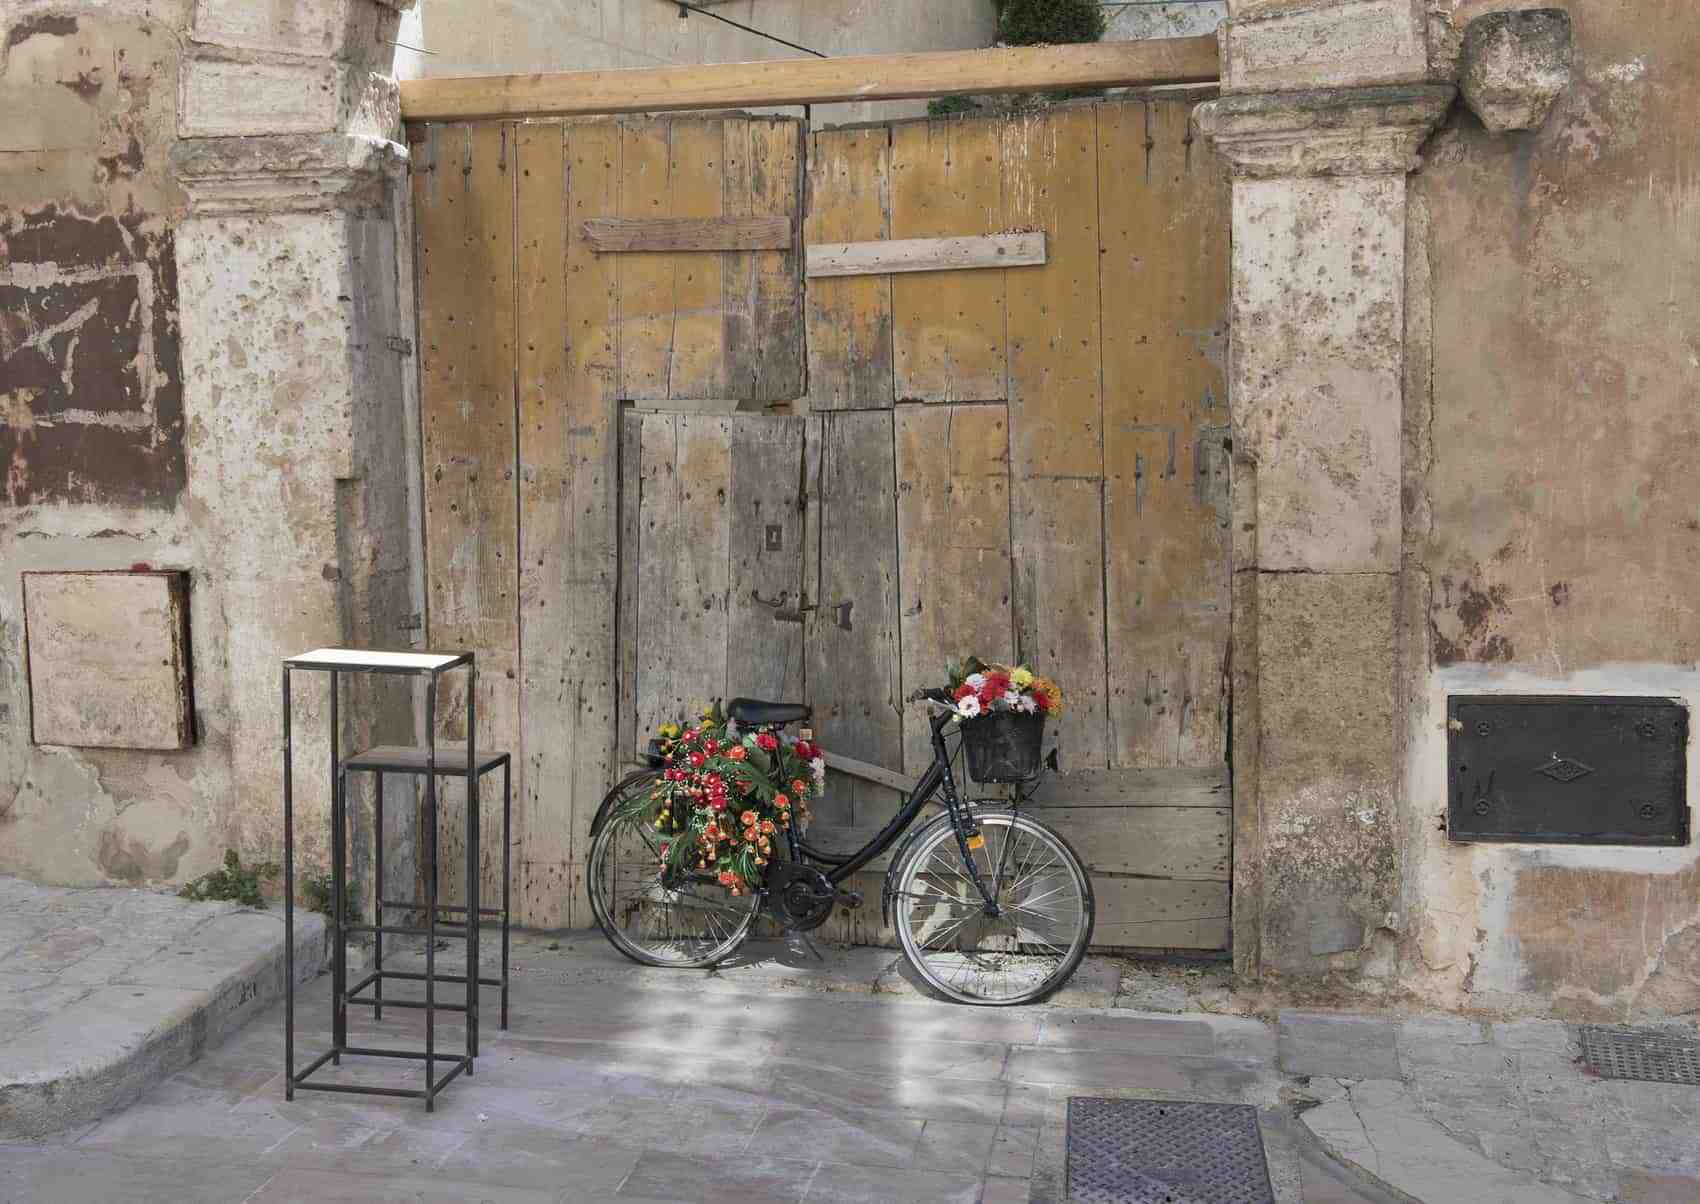 Pictured is a black bicycle with flat tires turned into a display for flowers in front of a closed business in Matera, Italy.